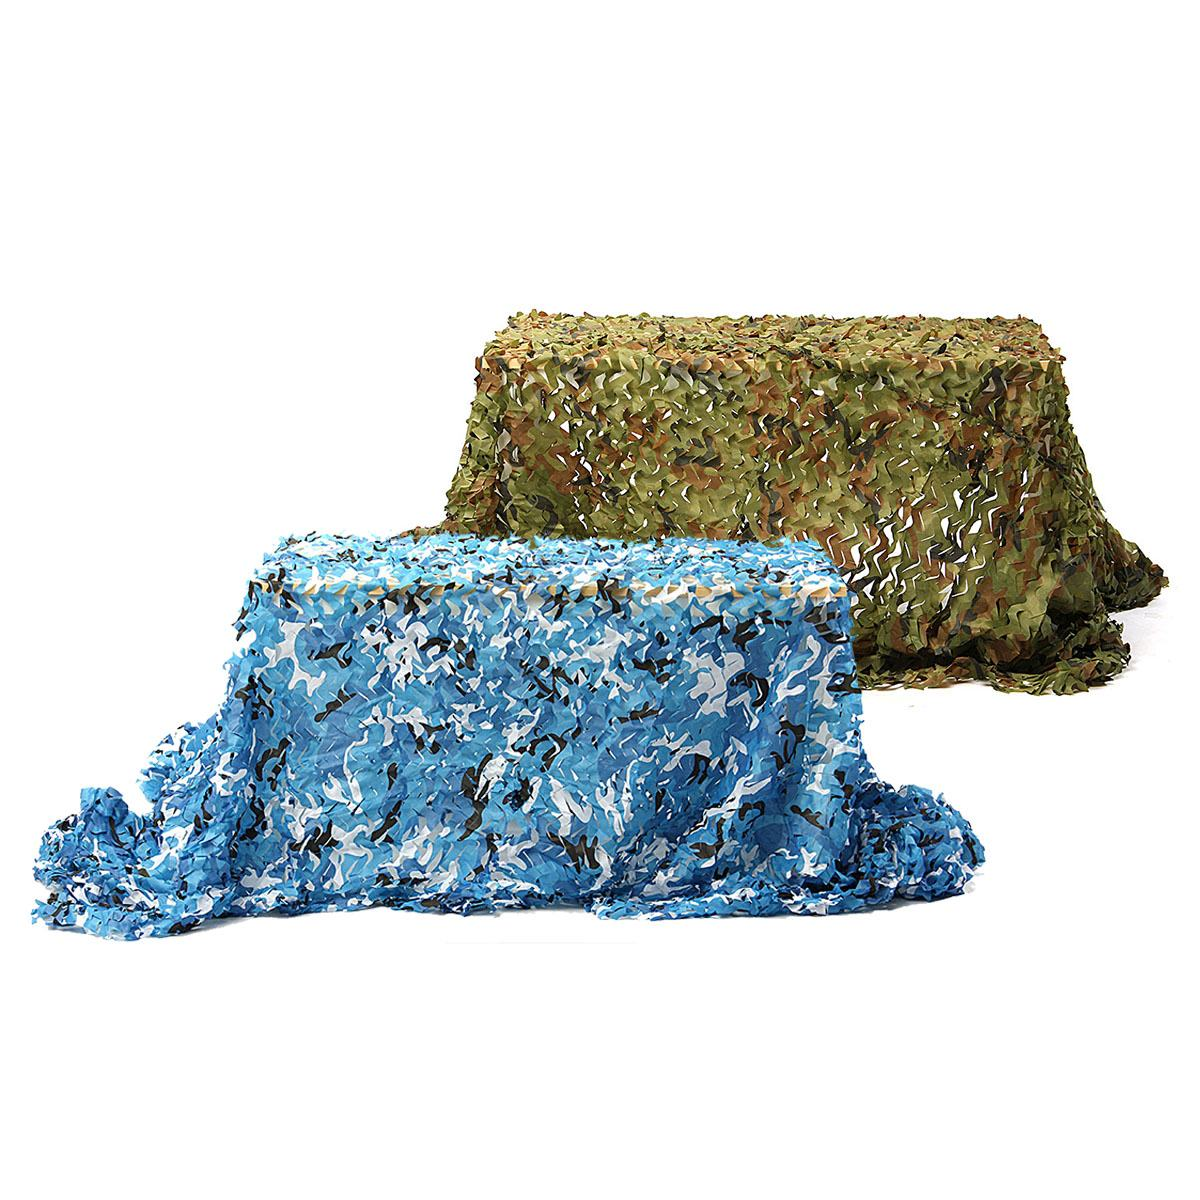 5mx2m Camo Camouflage Net For Car Cover Camping Military CS Hunting Shooting Hide5mx2m Camo Camouflage Net For Car Cover Camping Military CS Hunting Shooting Hide